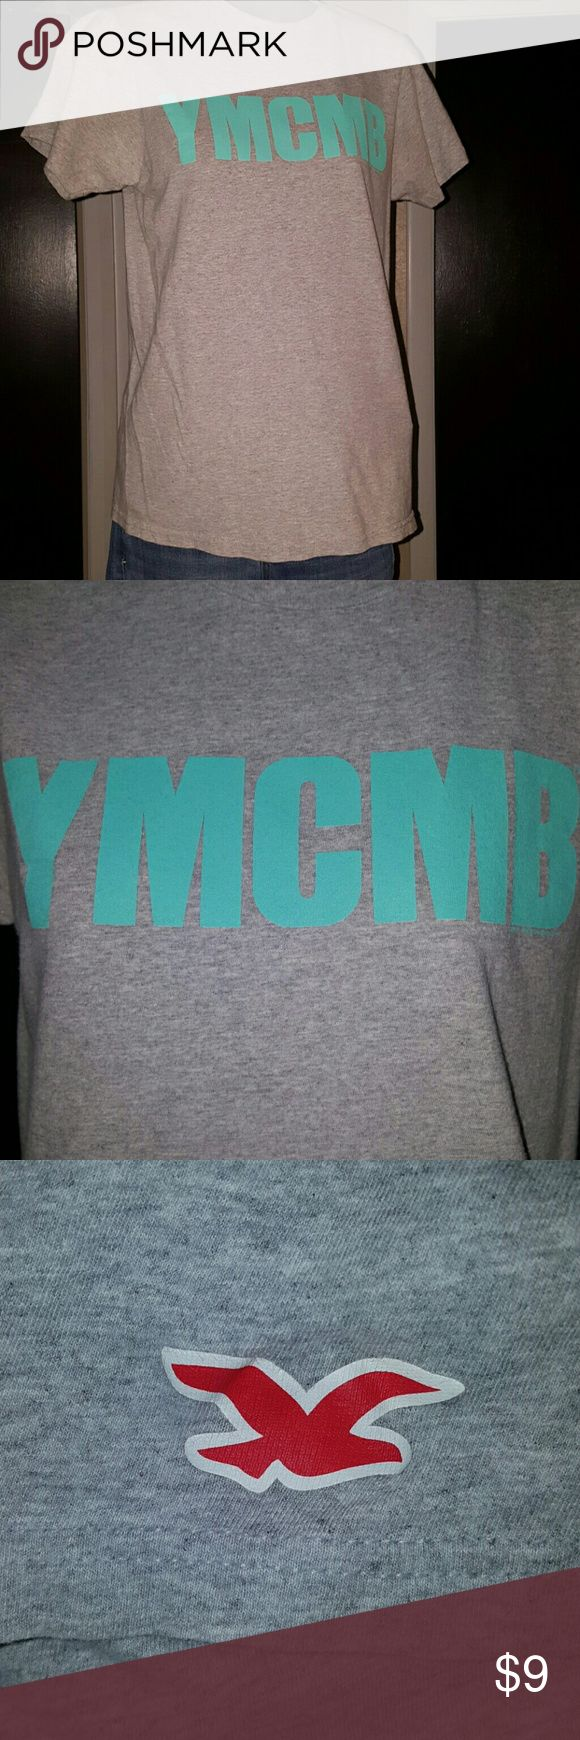 YMCMB Shirt Size - women's small Color - grey & turquoise  No stains No holes Like new condition! Make me an offer!! Tops Tees - Short Sleeve